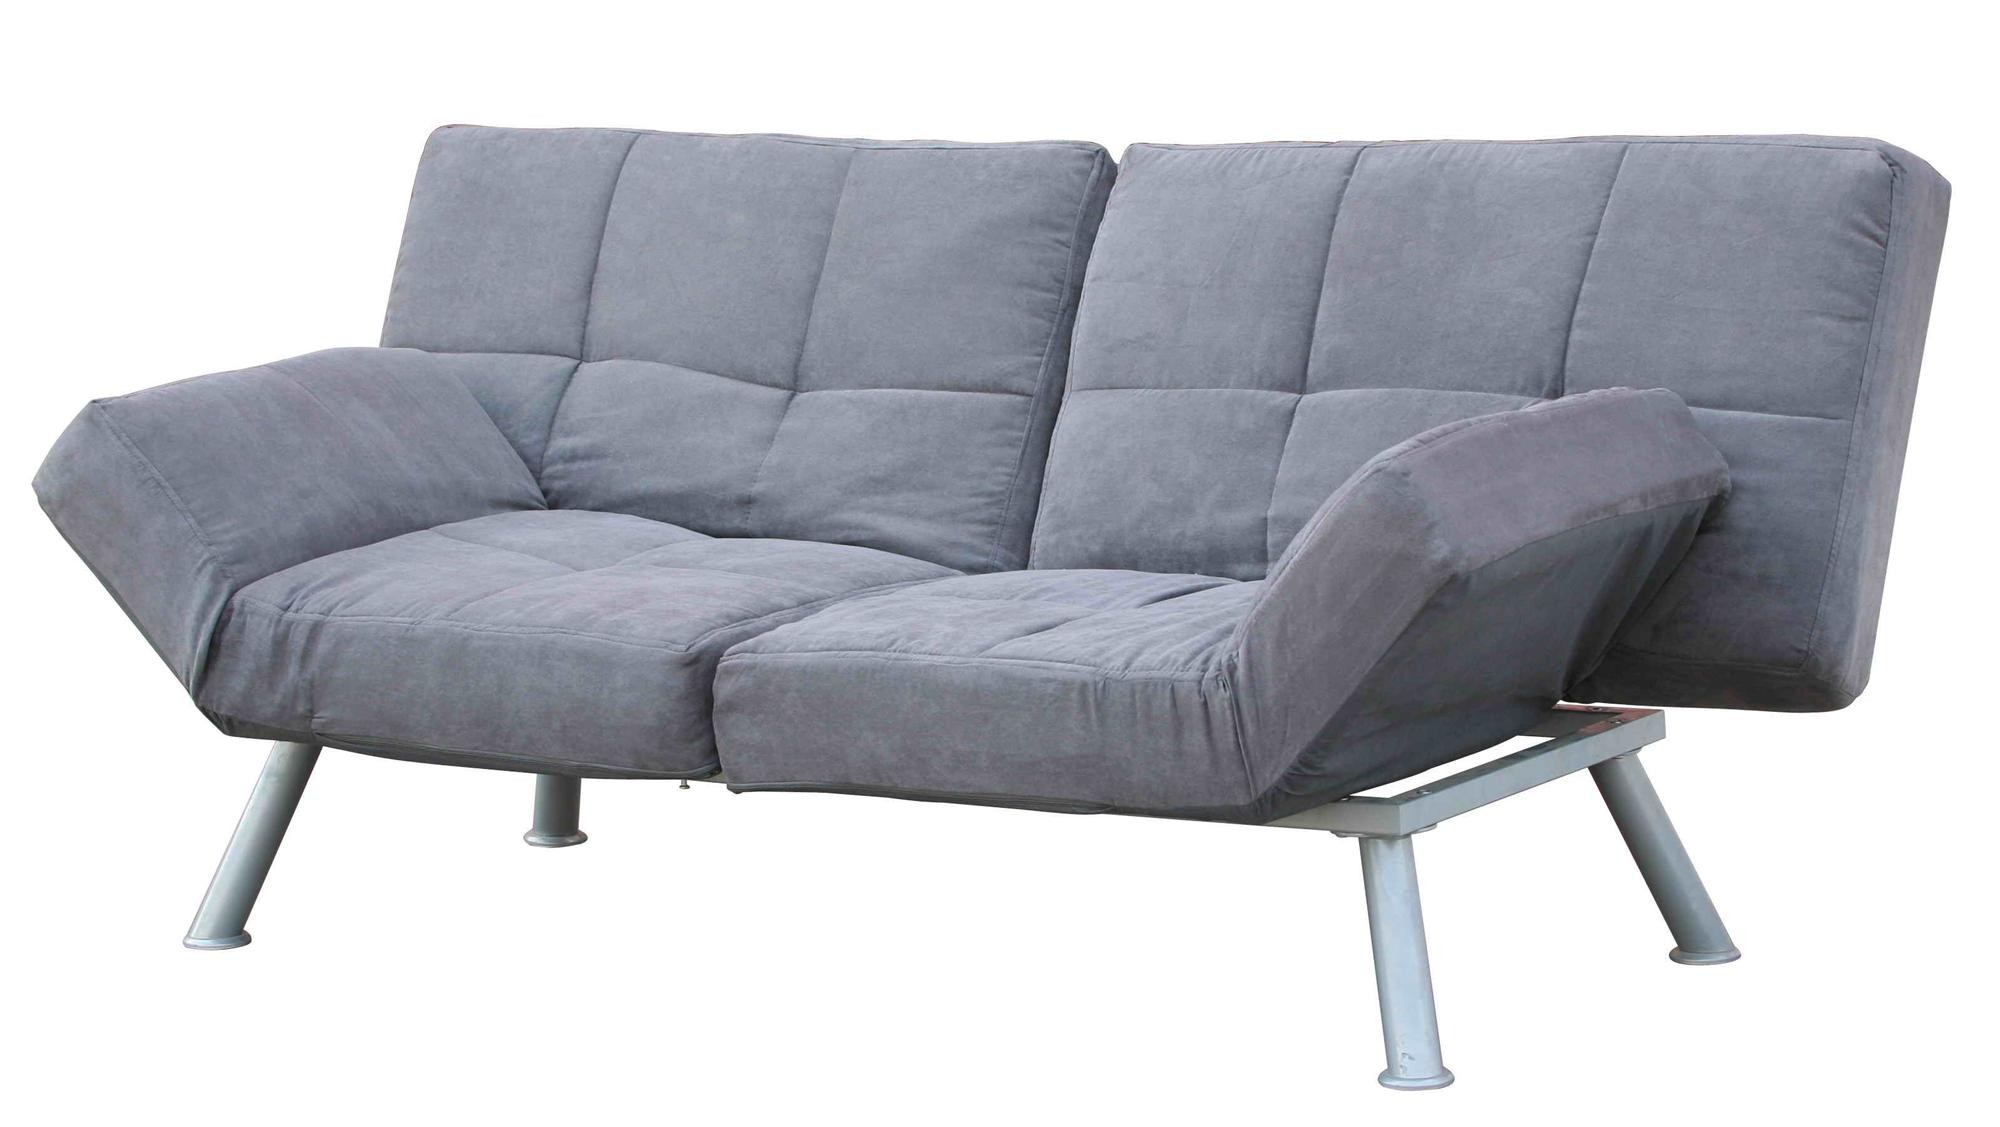 Most Comfortable Futons